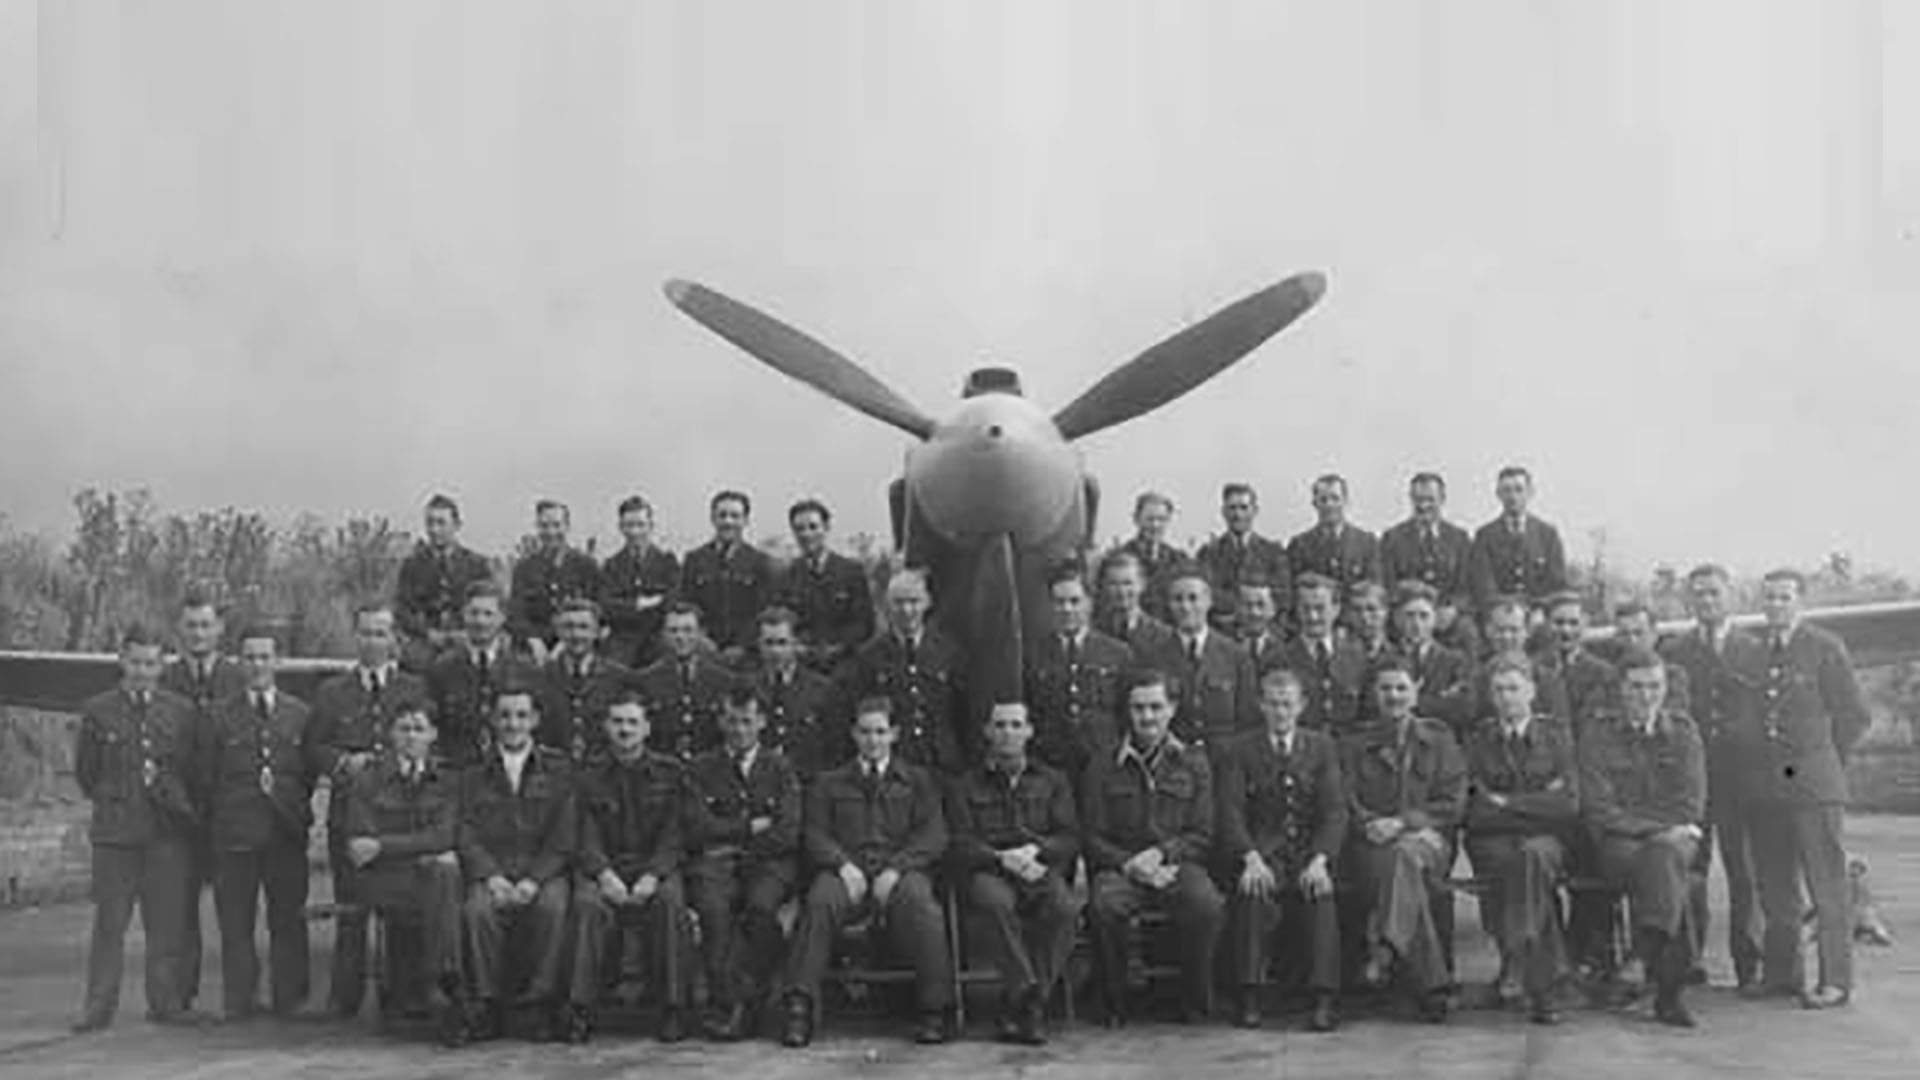 RAF 26 Squadron at Ballyhalbert, Co. Down